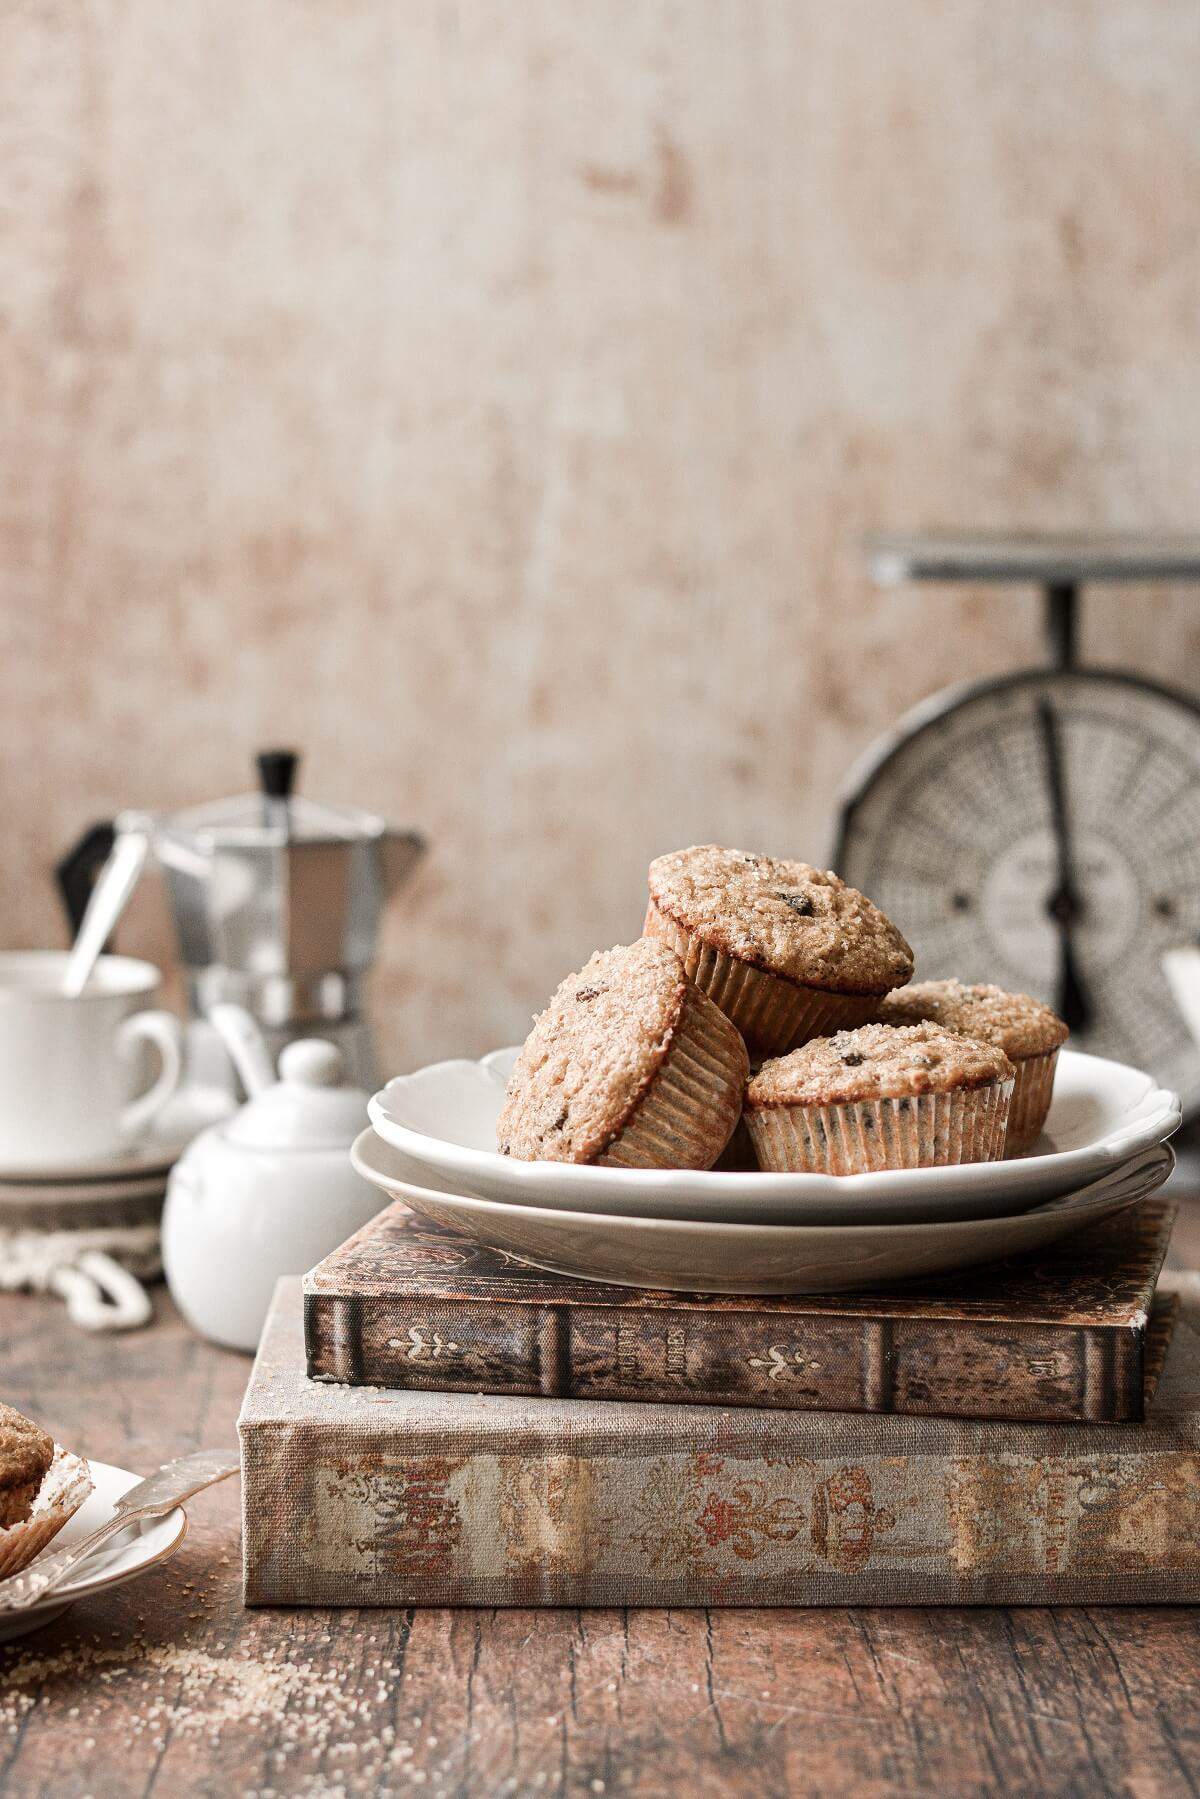 Oatmeal raisin muffins, piled on a plate, next to a cup of coffee.